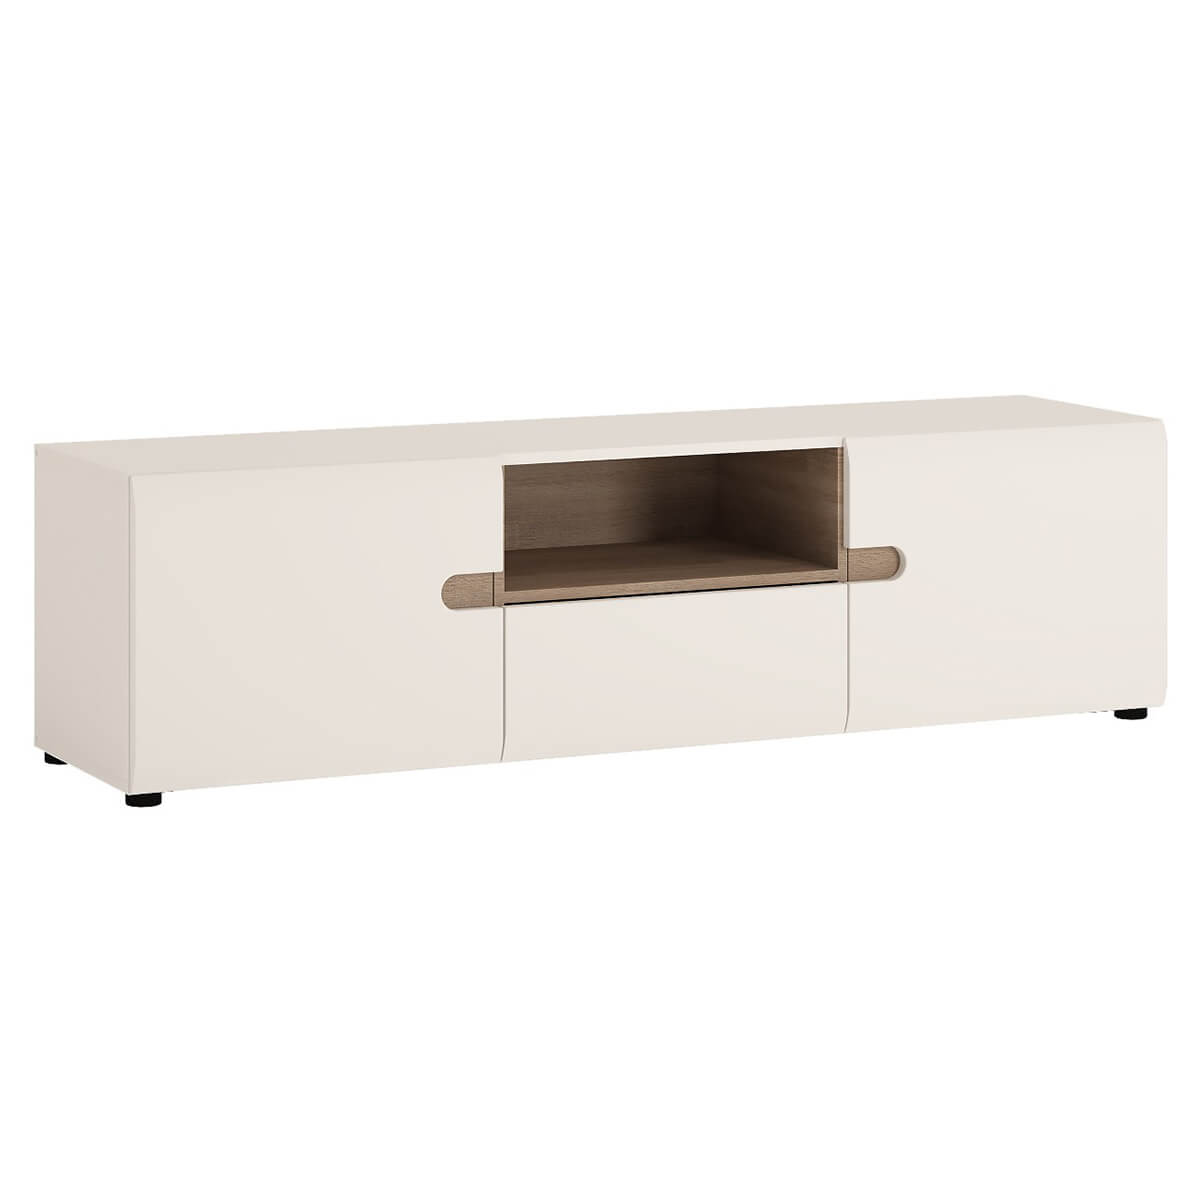 Mode TV Unit With Shelf 164cm White Gloss & Truffle Oak